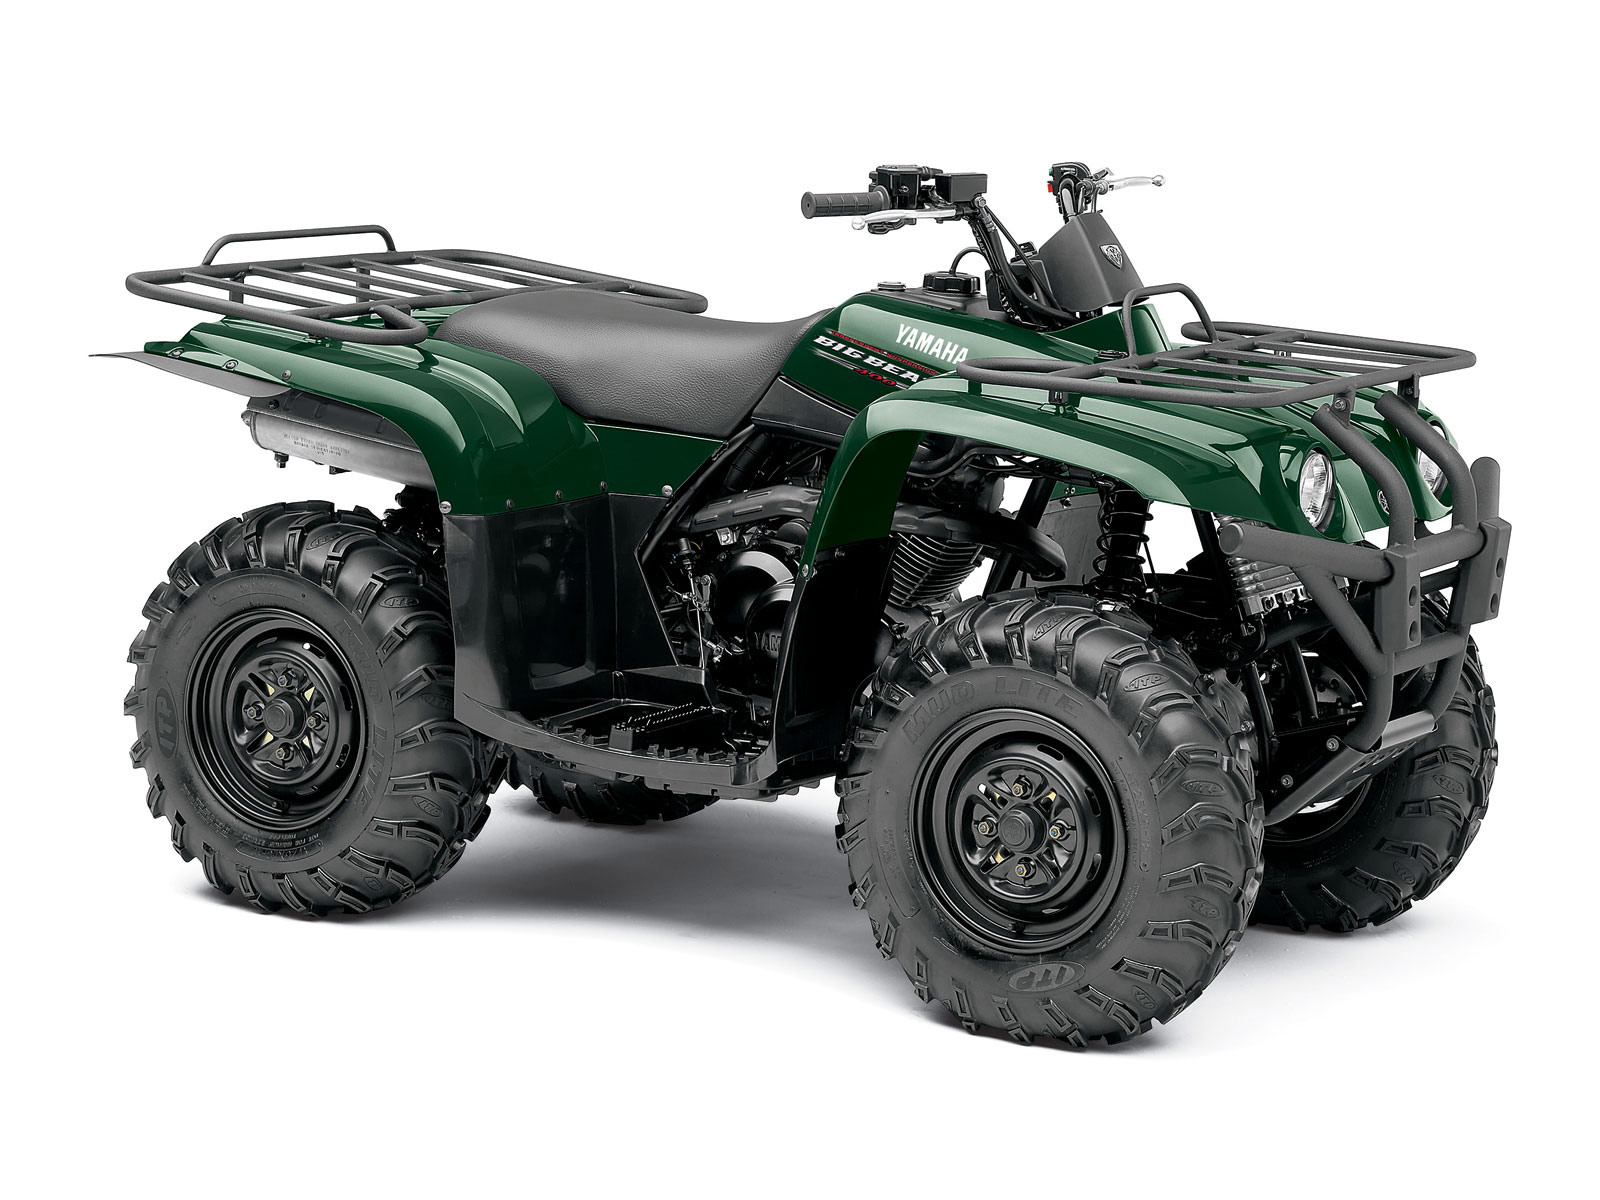 2012 yamaha big bear 400 4x4 irs atv insurance information. Black Bedroom Furniture Sets. Home Design Ideas